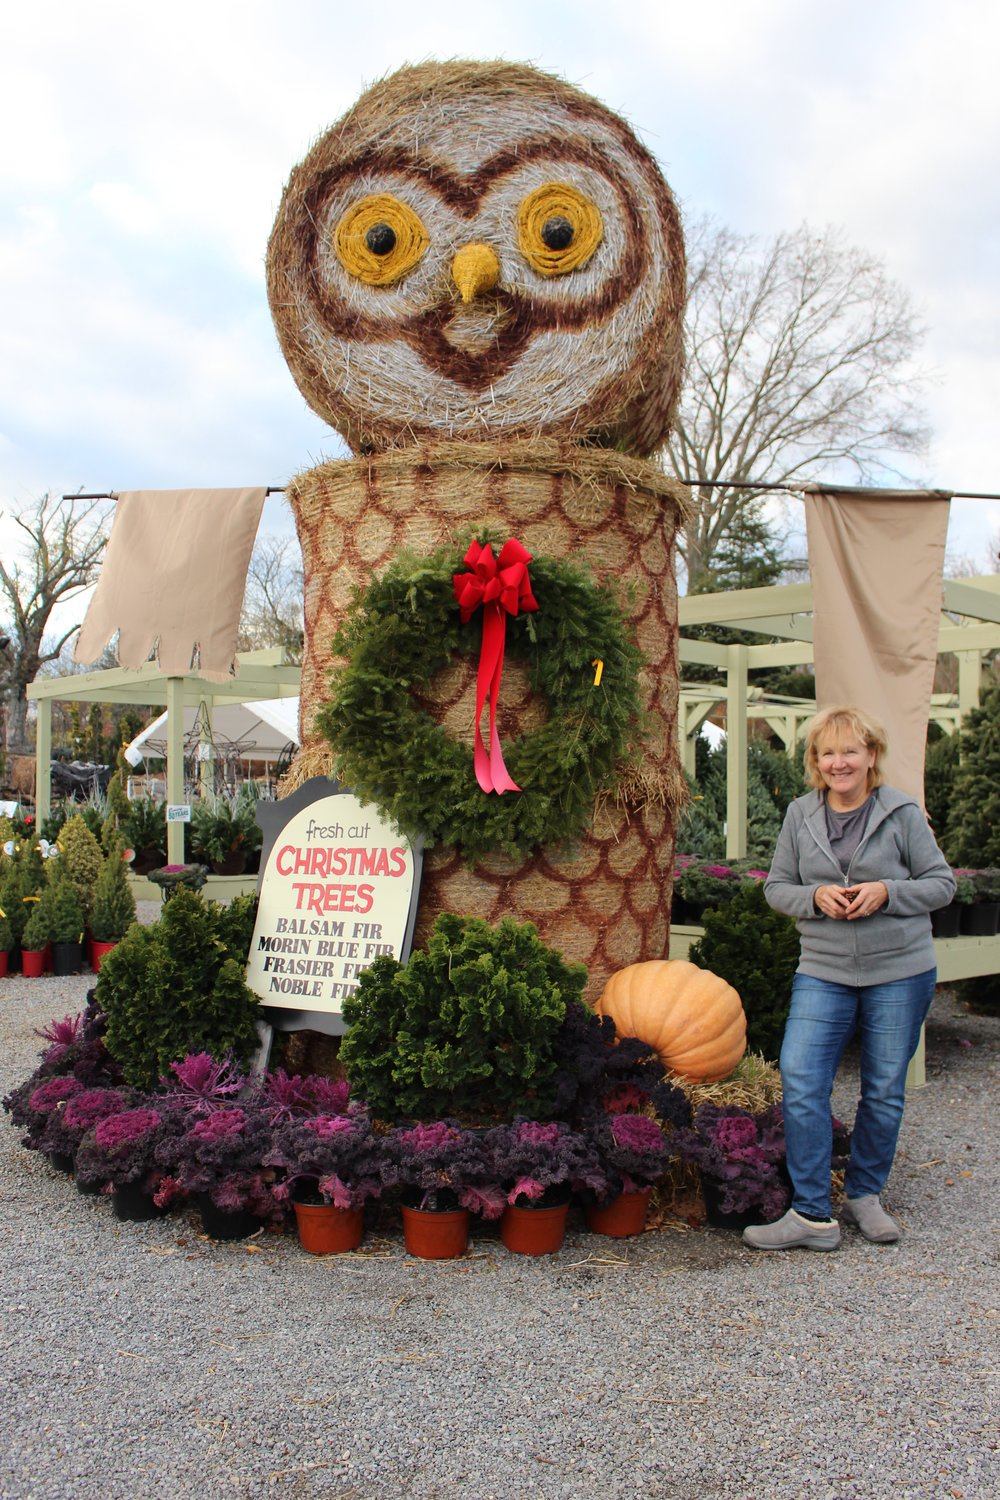 Donna Bemiss, owner of Oakwood Road Nursery, stands next to a giant owl made from hay and a sign listing the types of trees the nursery offers this holiday season.